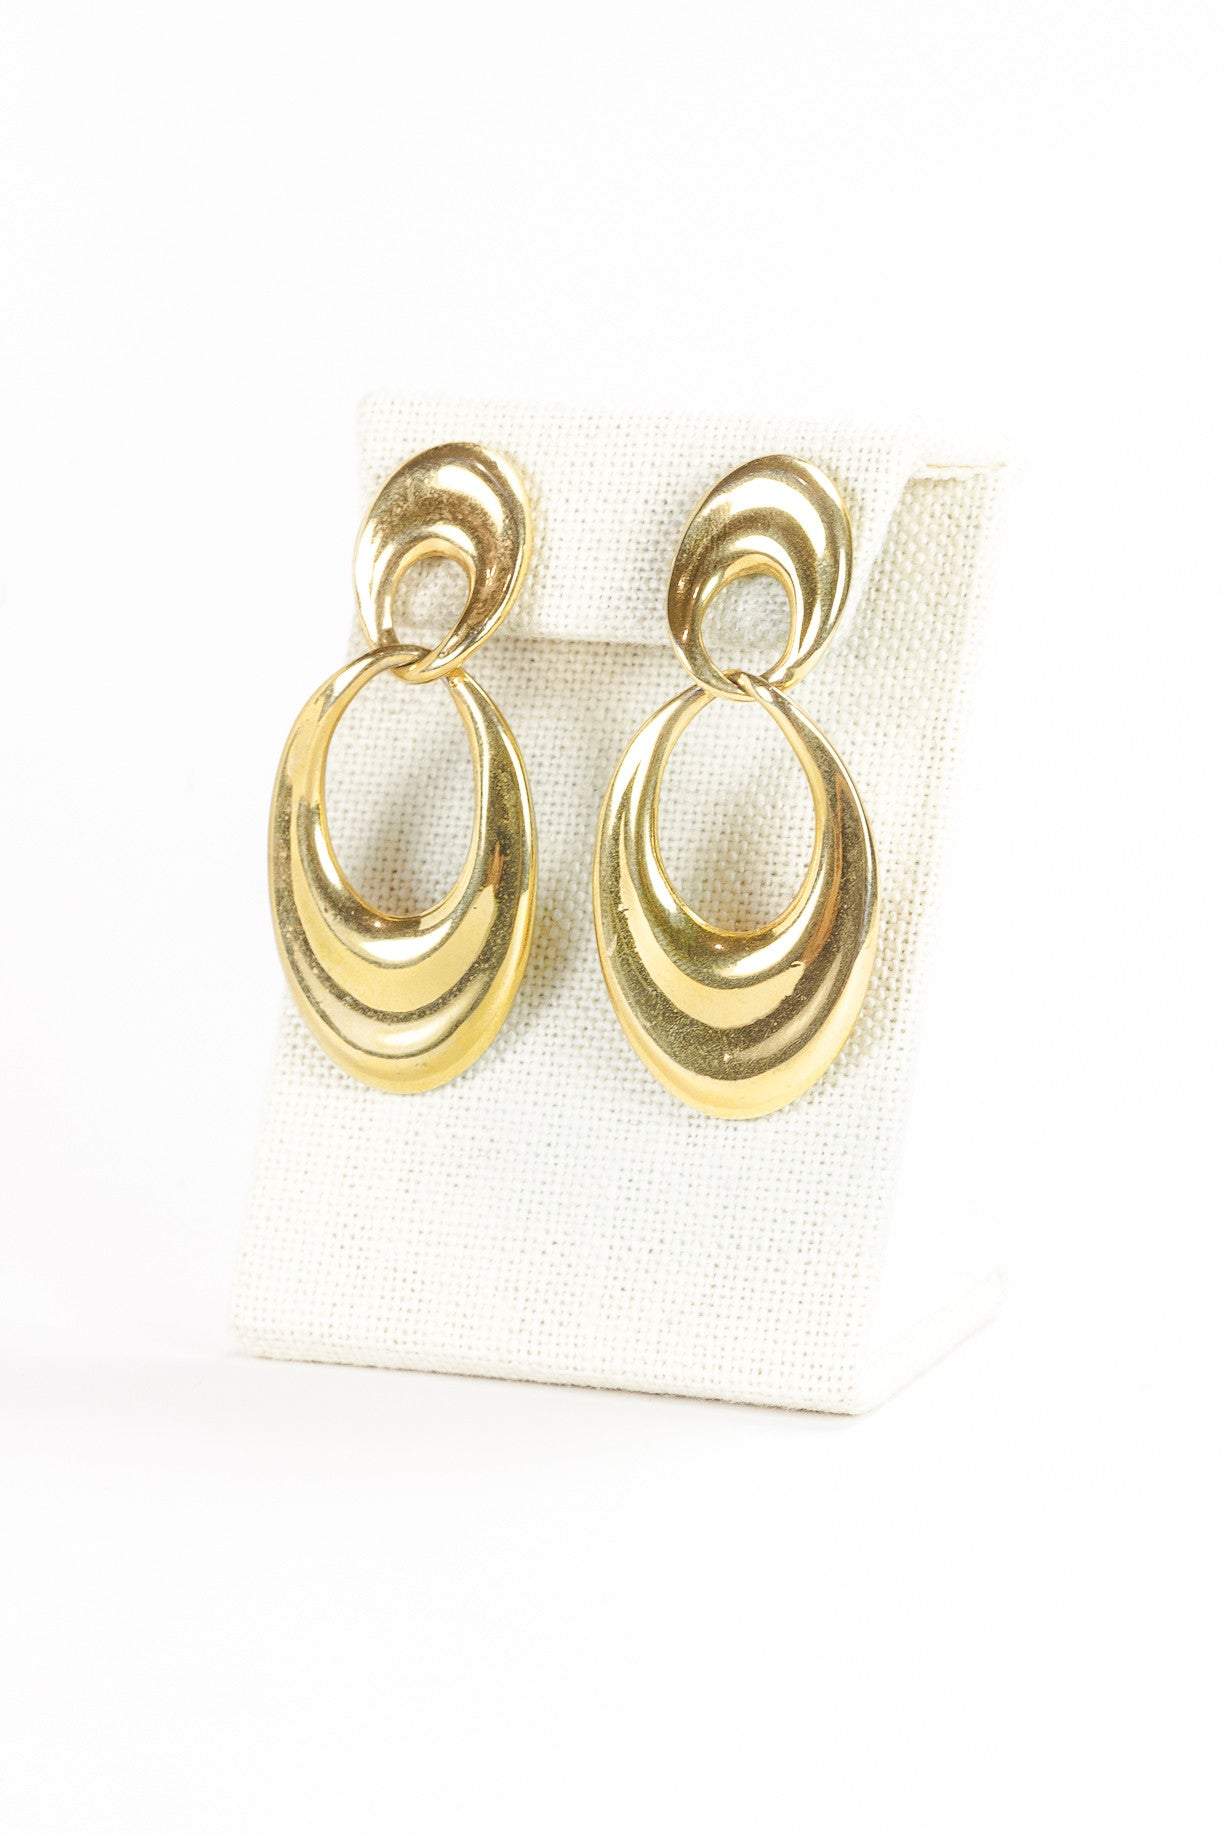 70's__Monet__Gold Link Drop Earrings